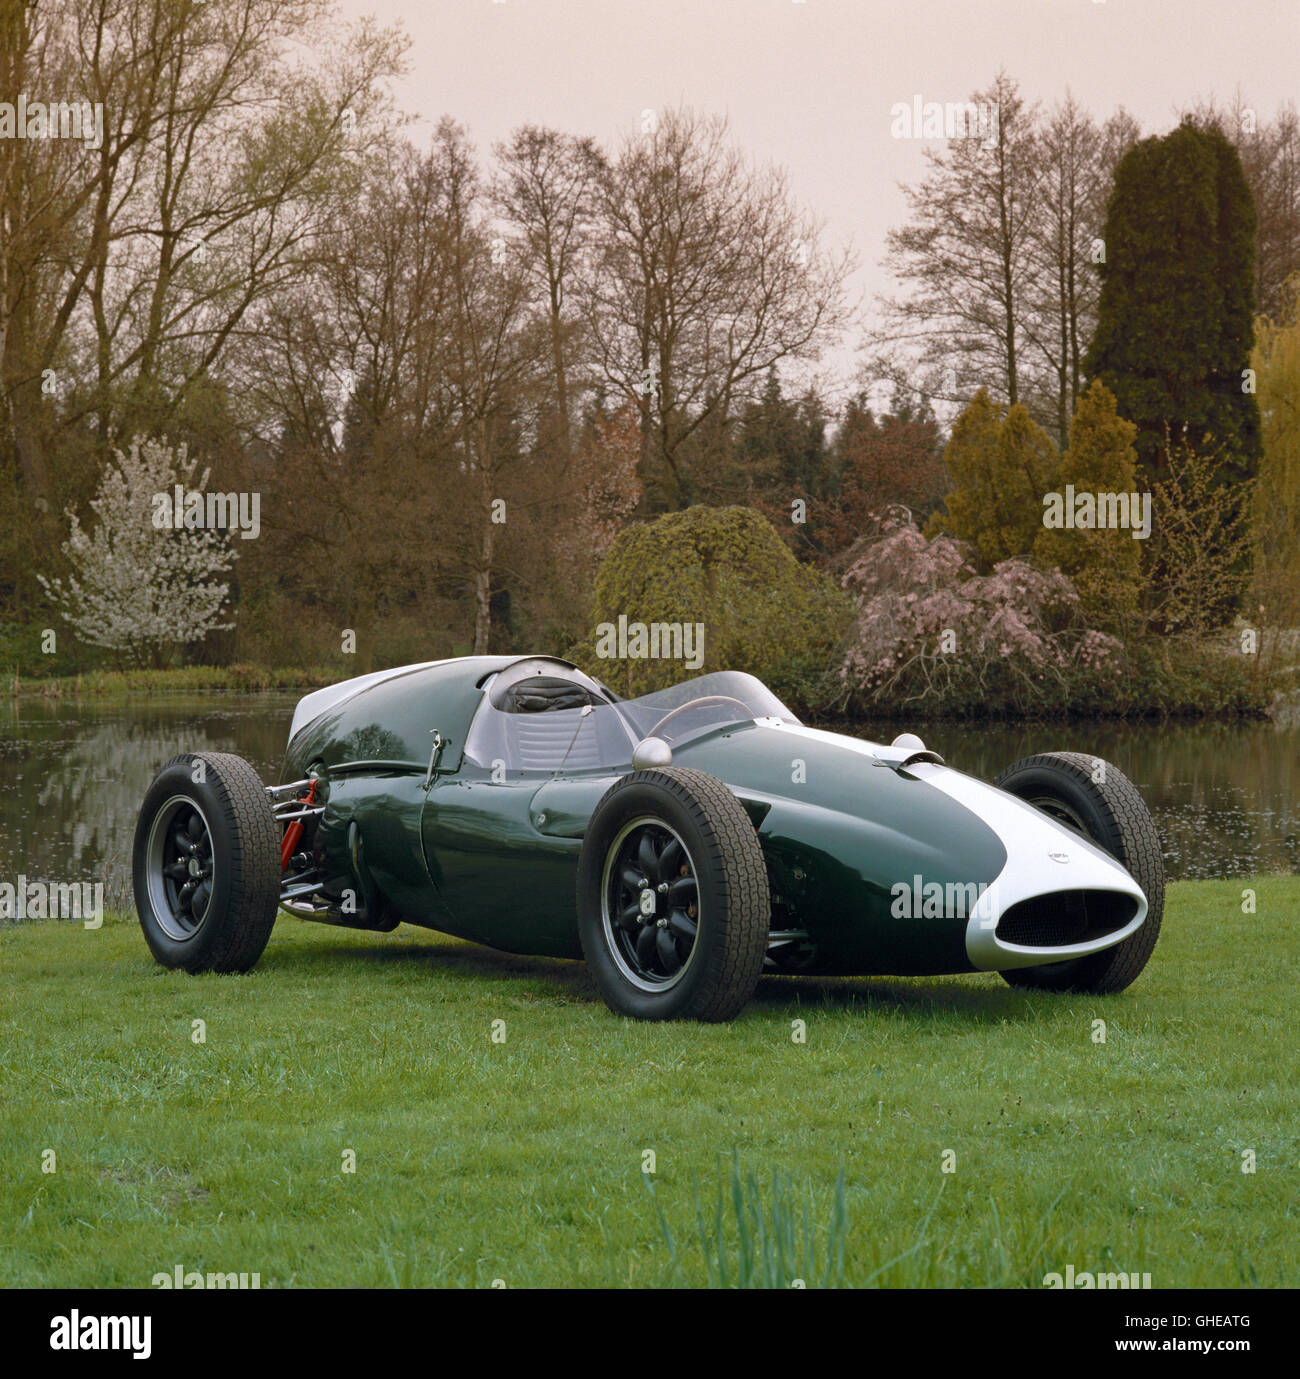 1959 Cooper Climax T51 2 5 litre 240 bhp single seat F1 racing car Country of origin United Kingdom - Stock Image